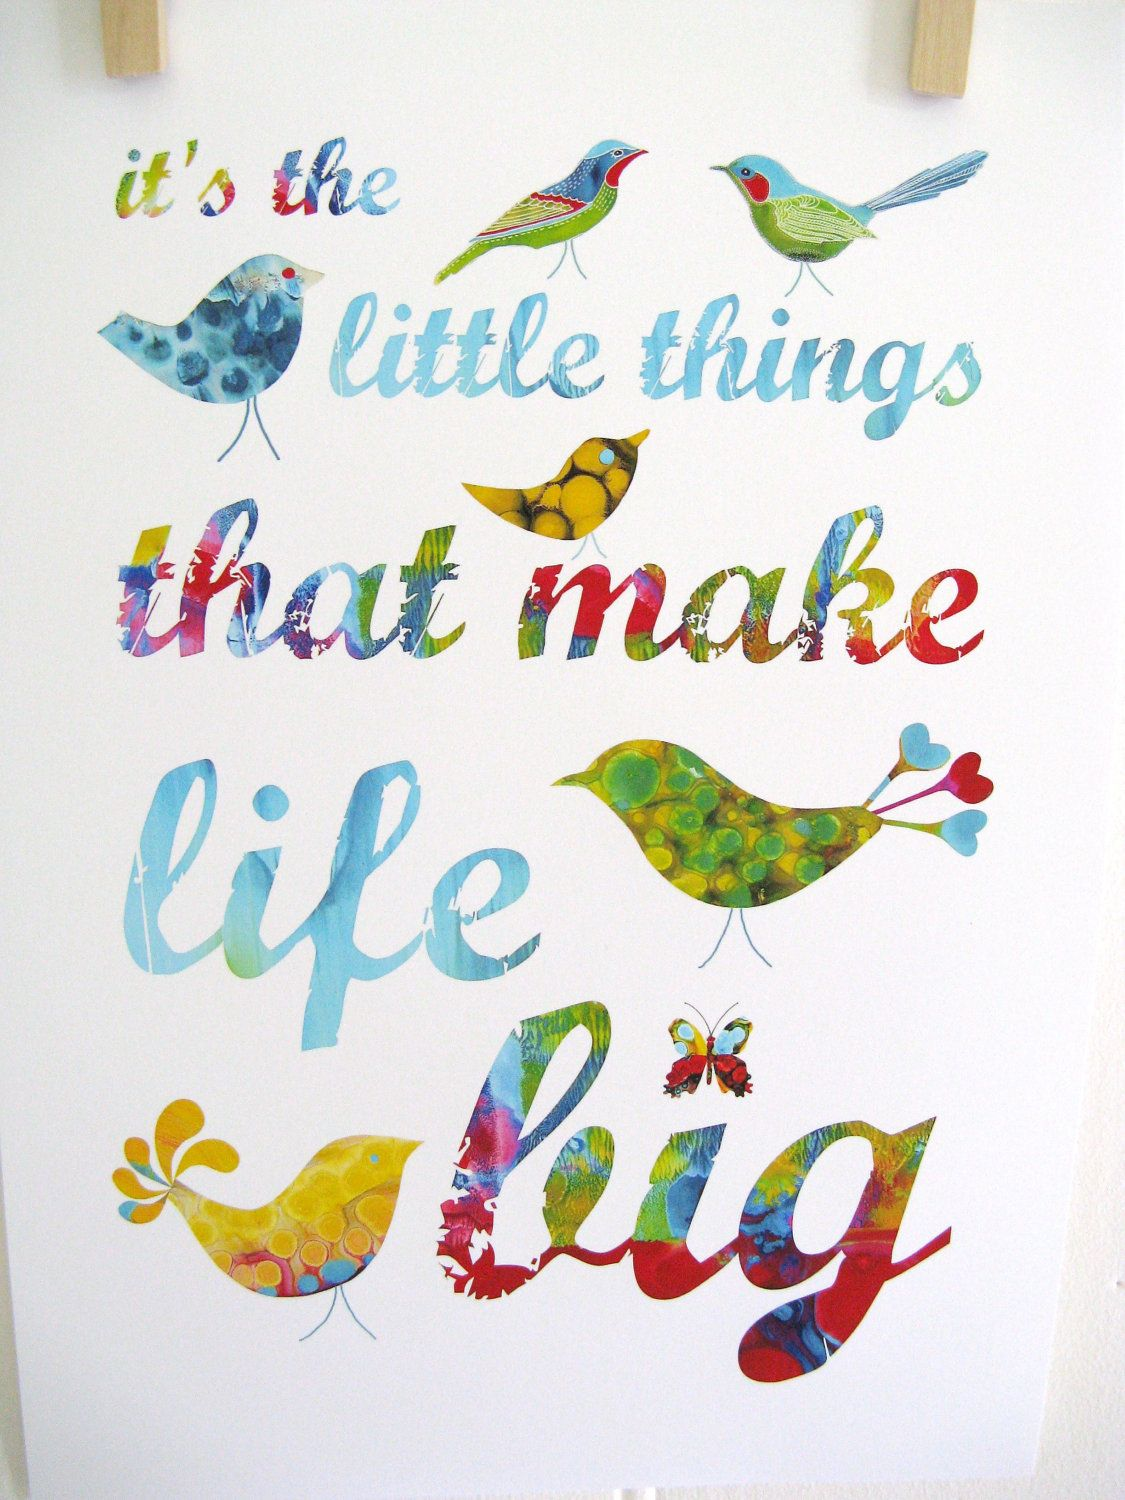 It's the little things that make life big - Kathy Panton, Etsy